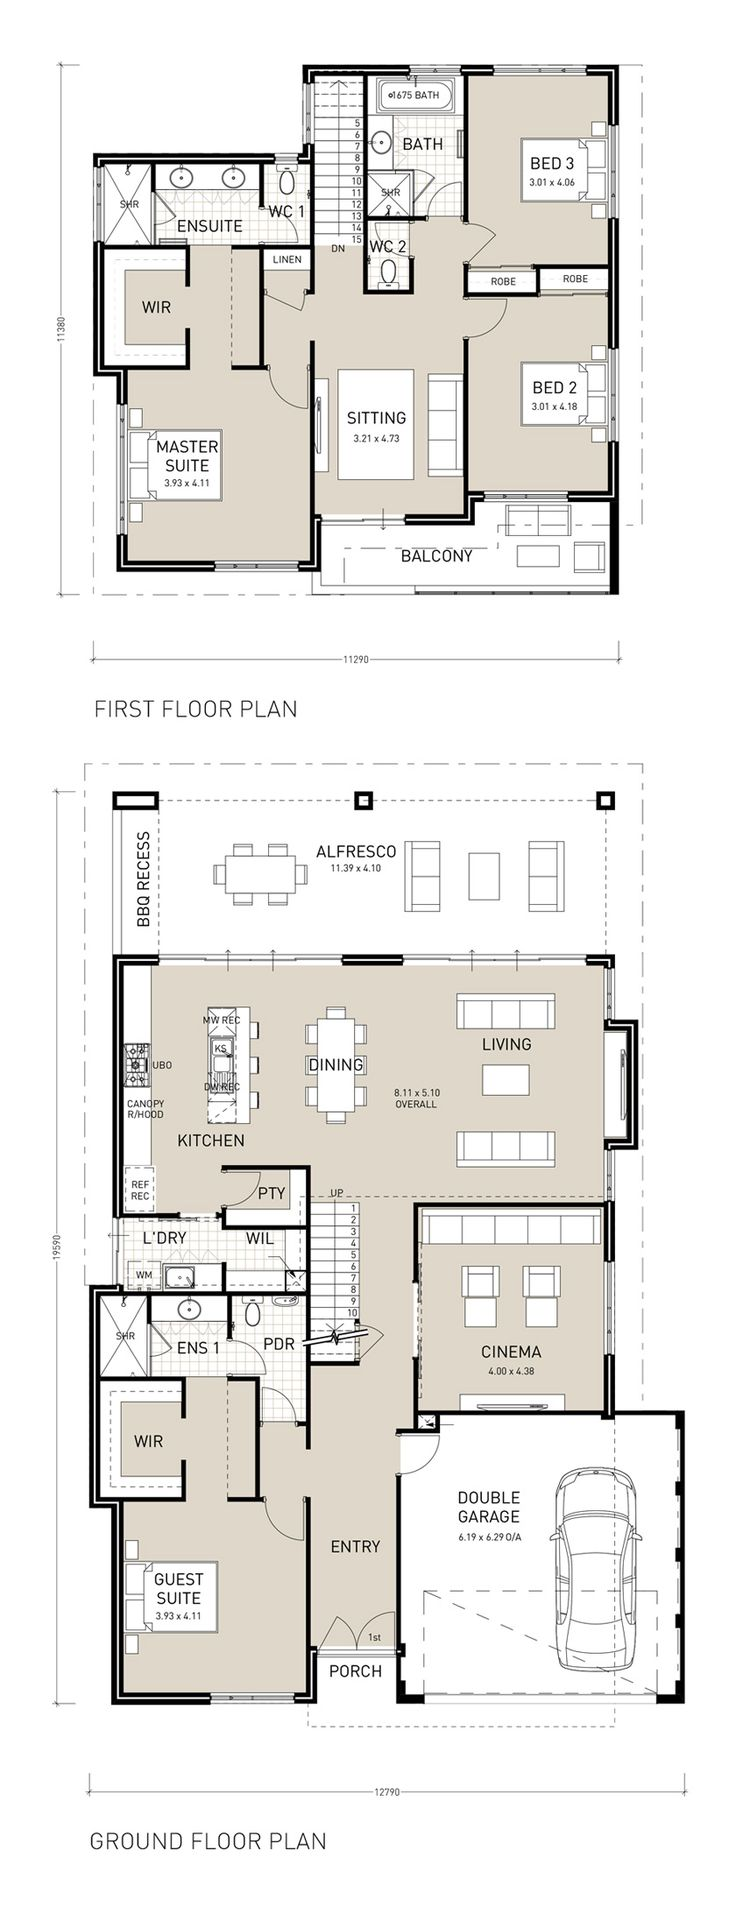 31 best reverse living house plans images on pinterest Reverse living house plans